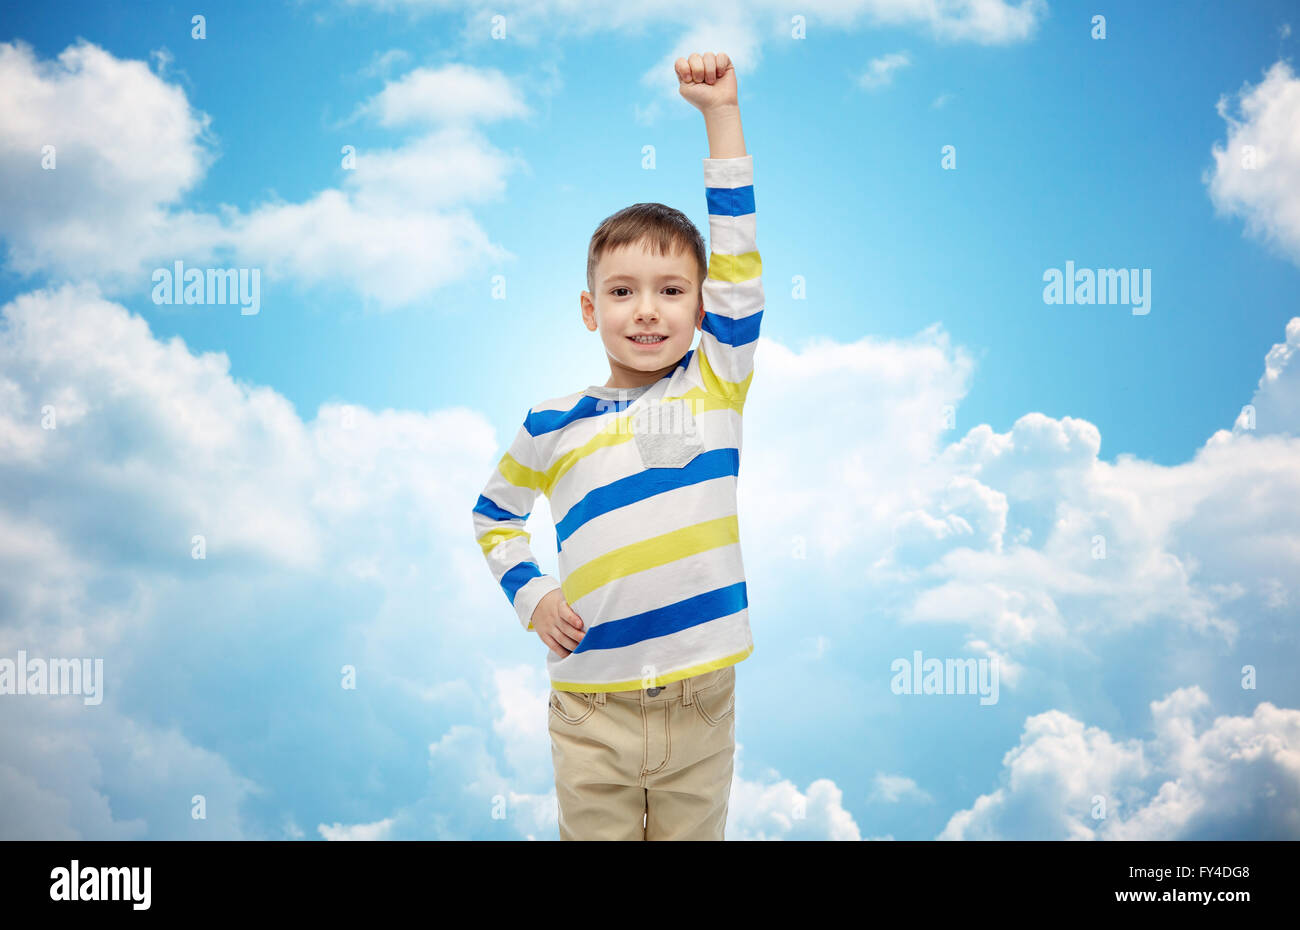 6978a0a7108ad happy smiling little boy with raised hand Stock Photo: 102746008 - Alamy